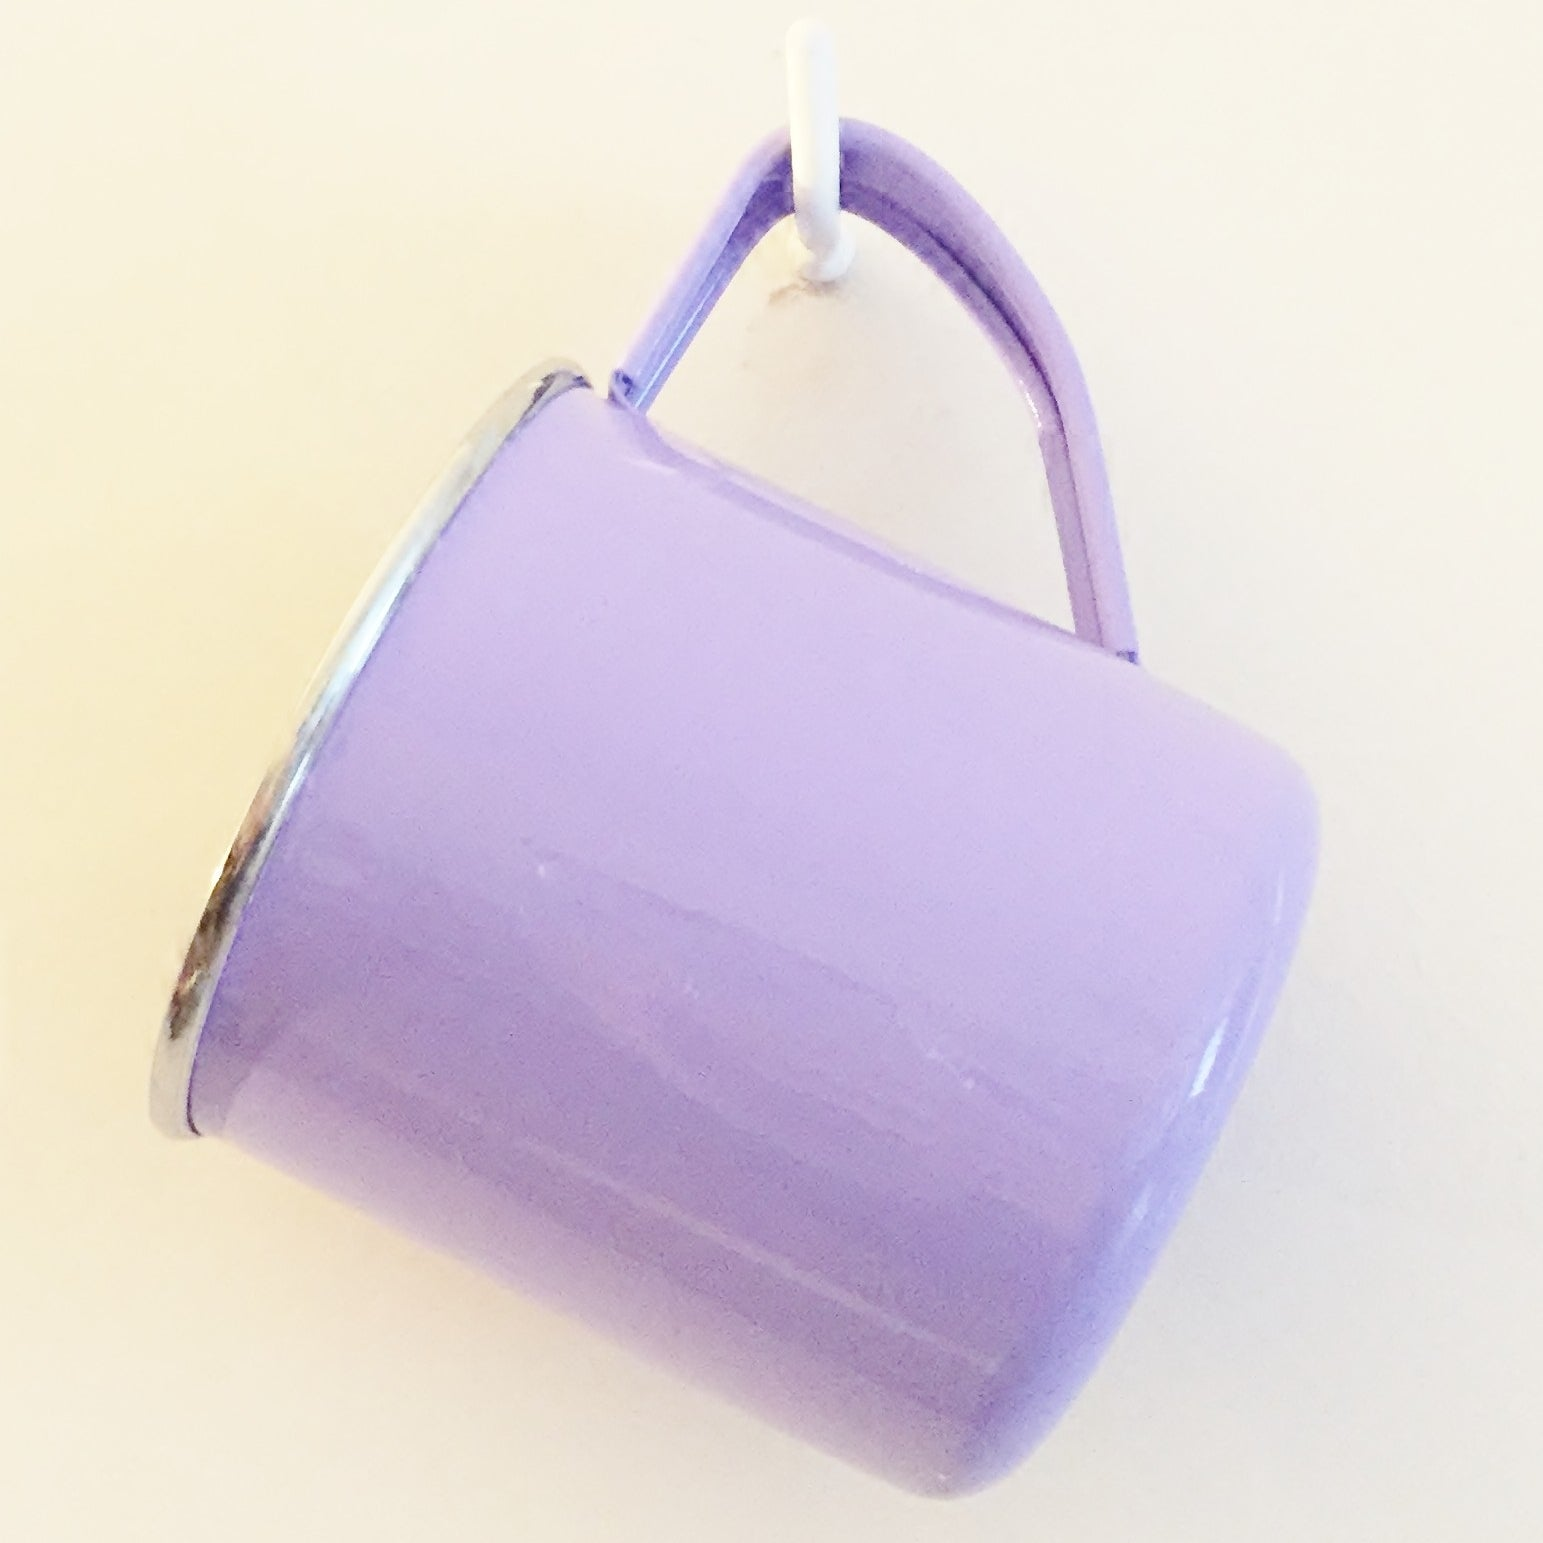 Lilac Enamelware Mug by Jasmine White on OOSTOR.com